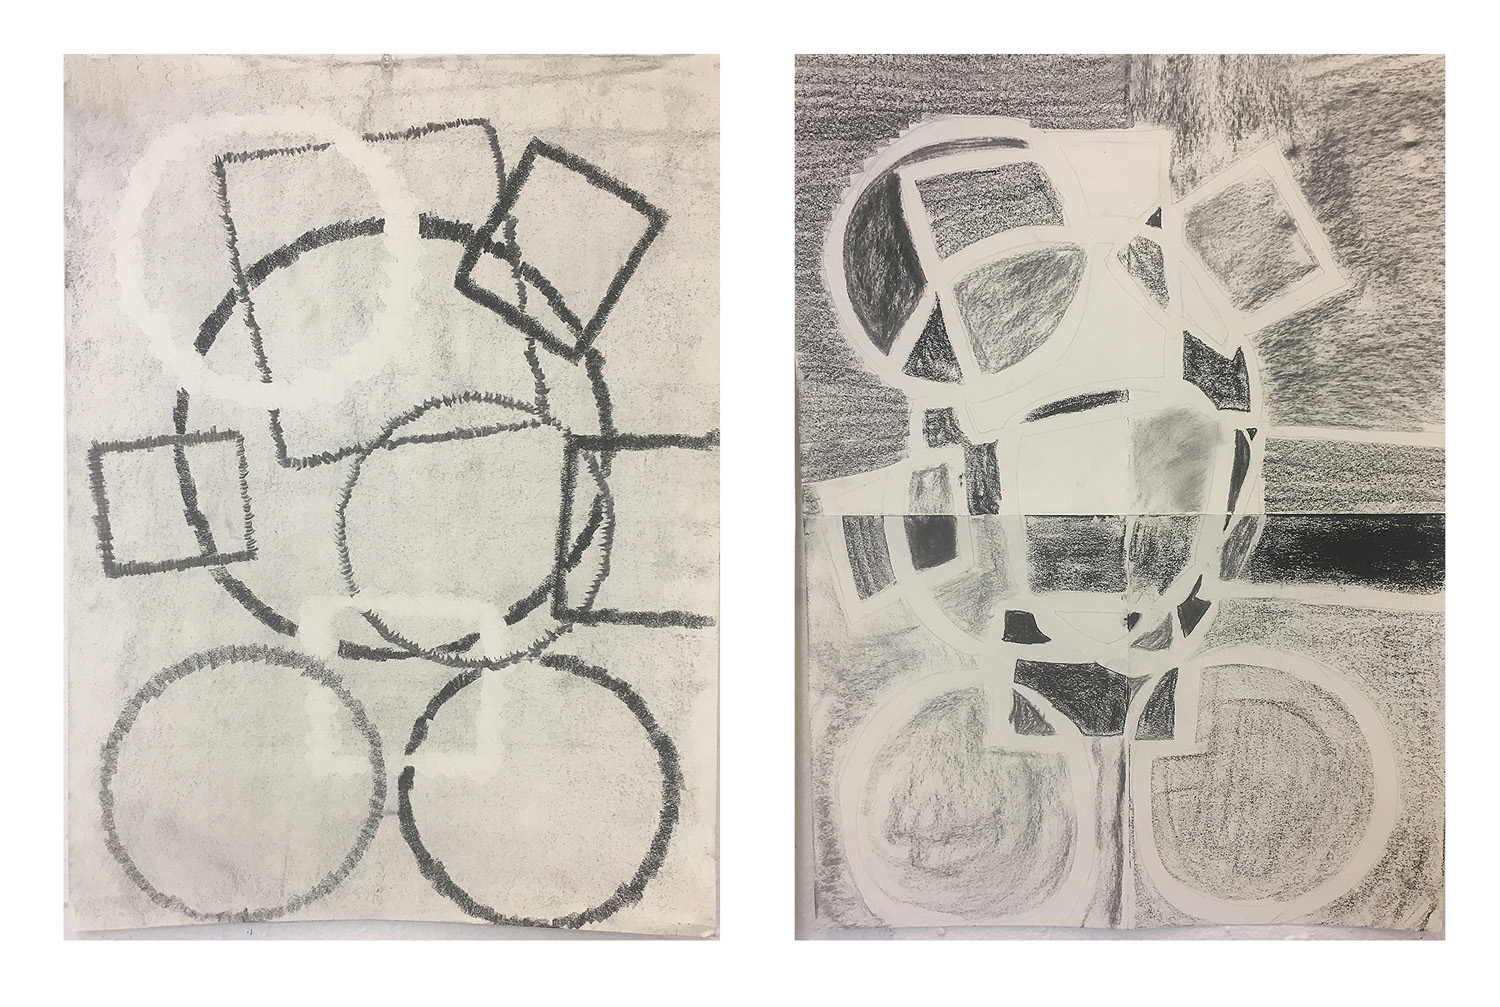 "08. Week 3 homework assignment: George Rush Erasure with line assignment. by Annamarie. Charcoal on paper. 2018. 18"" x 24"" each  Drawing Fundamentals for Drawing Majors, RISD  Assignment: Follow the instructions from George Rush, which involve folding the paper, drawing specific shapes and erasing marks. This project allows the students to work non-representationally and experiment with unfamiliar methods of creating compositions."